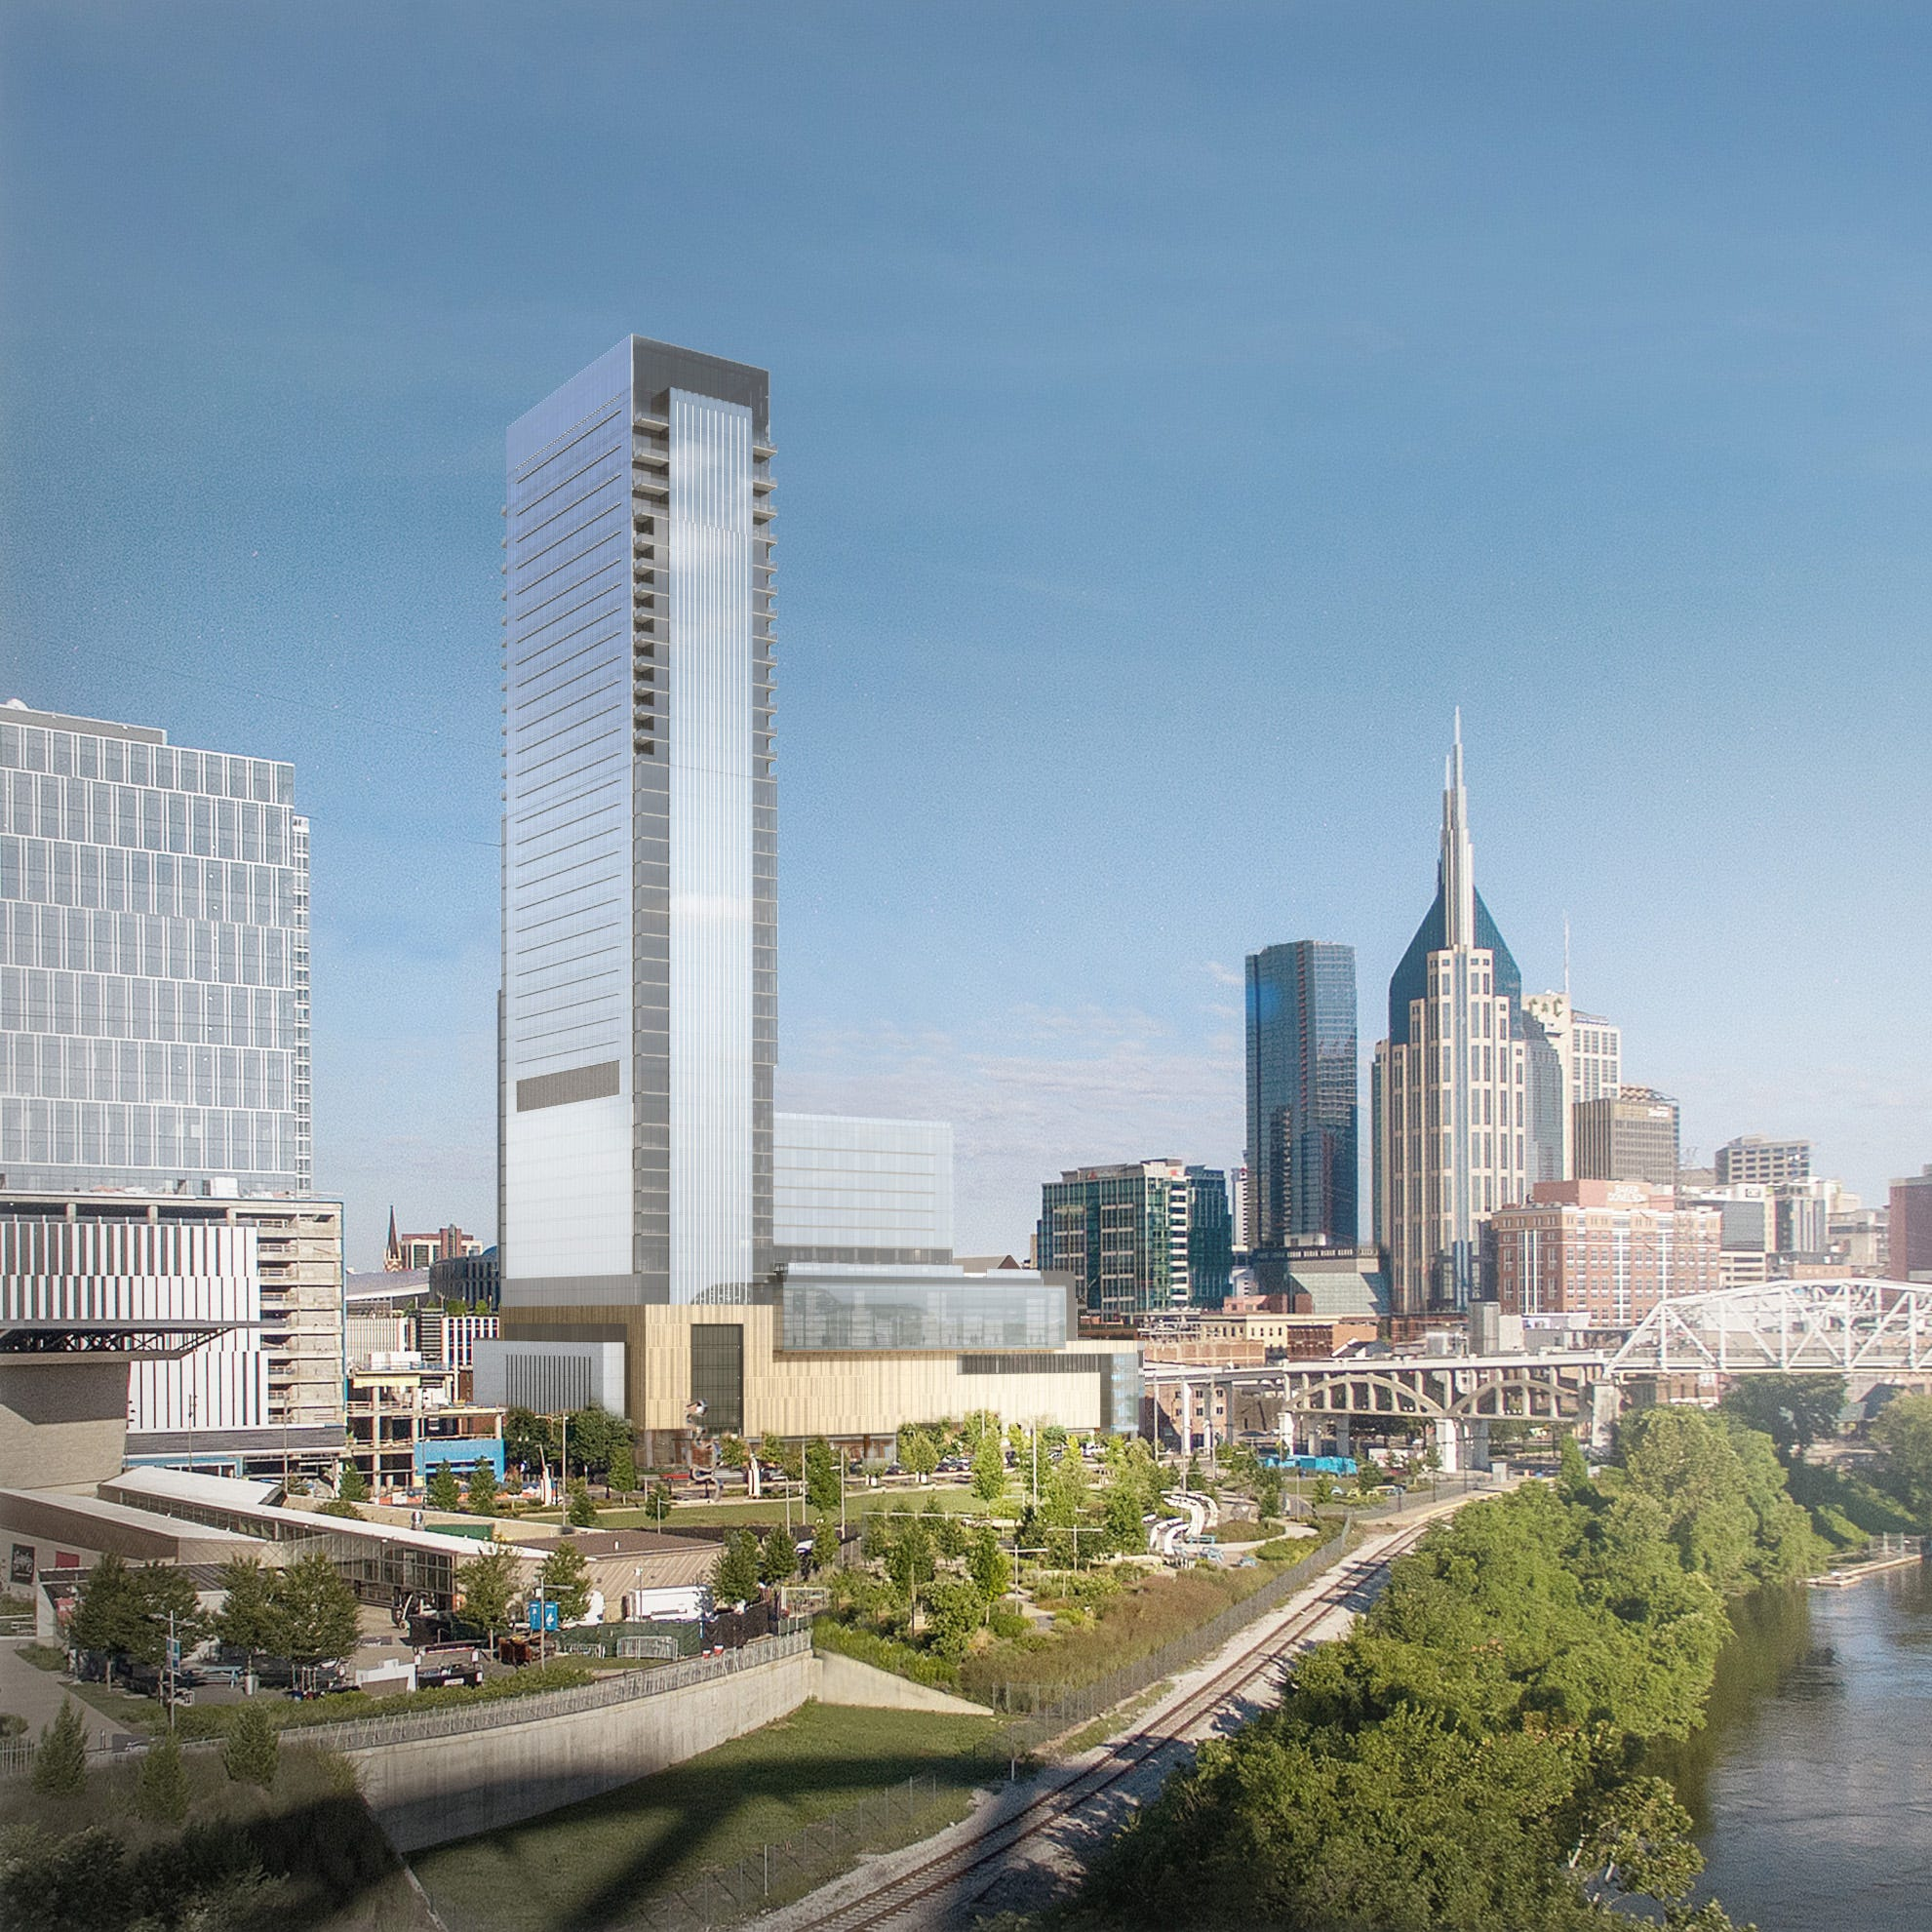 First look: Four Seasons will add 5-star hotel to Nashville skyline